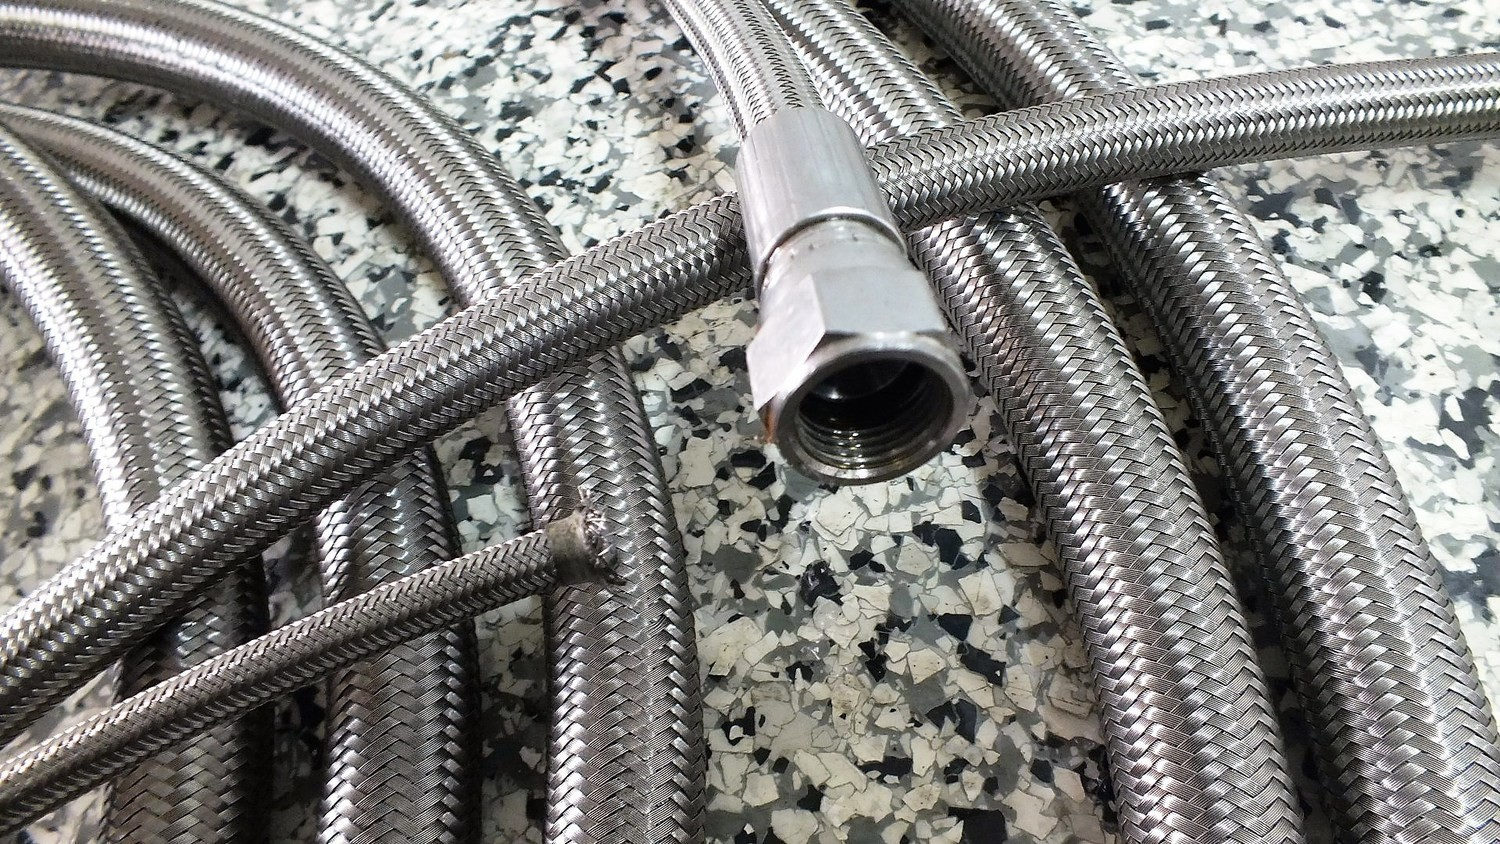 STAINLESS BRAIDED HYDRAULIC HOSE TURBO's AIR COMPRESSORS HIGH HEAT